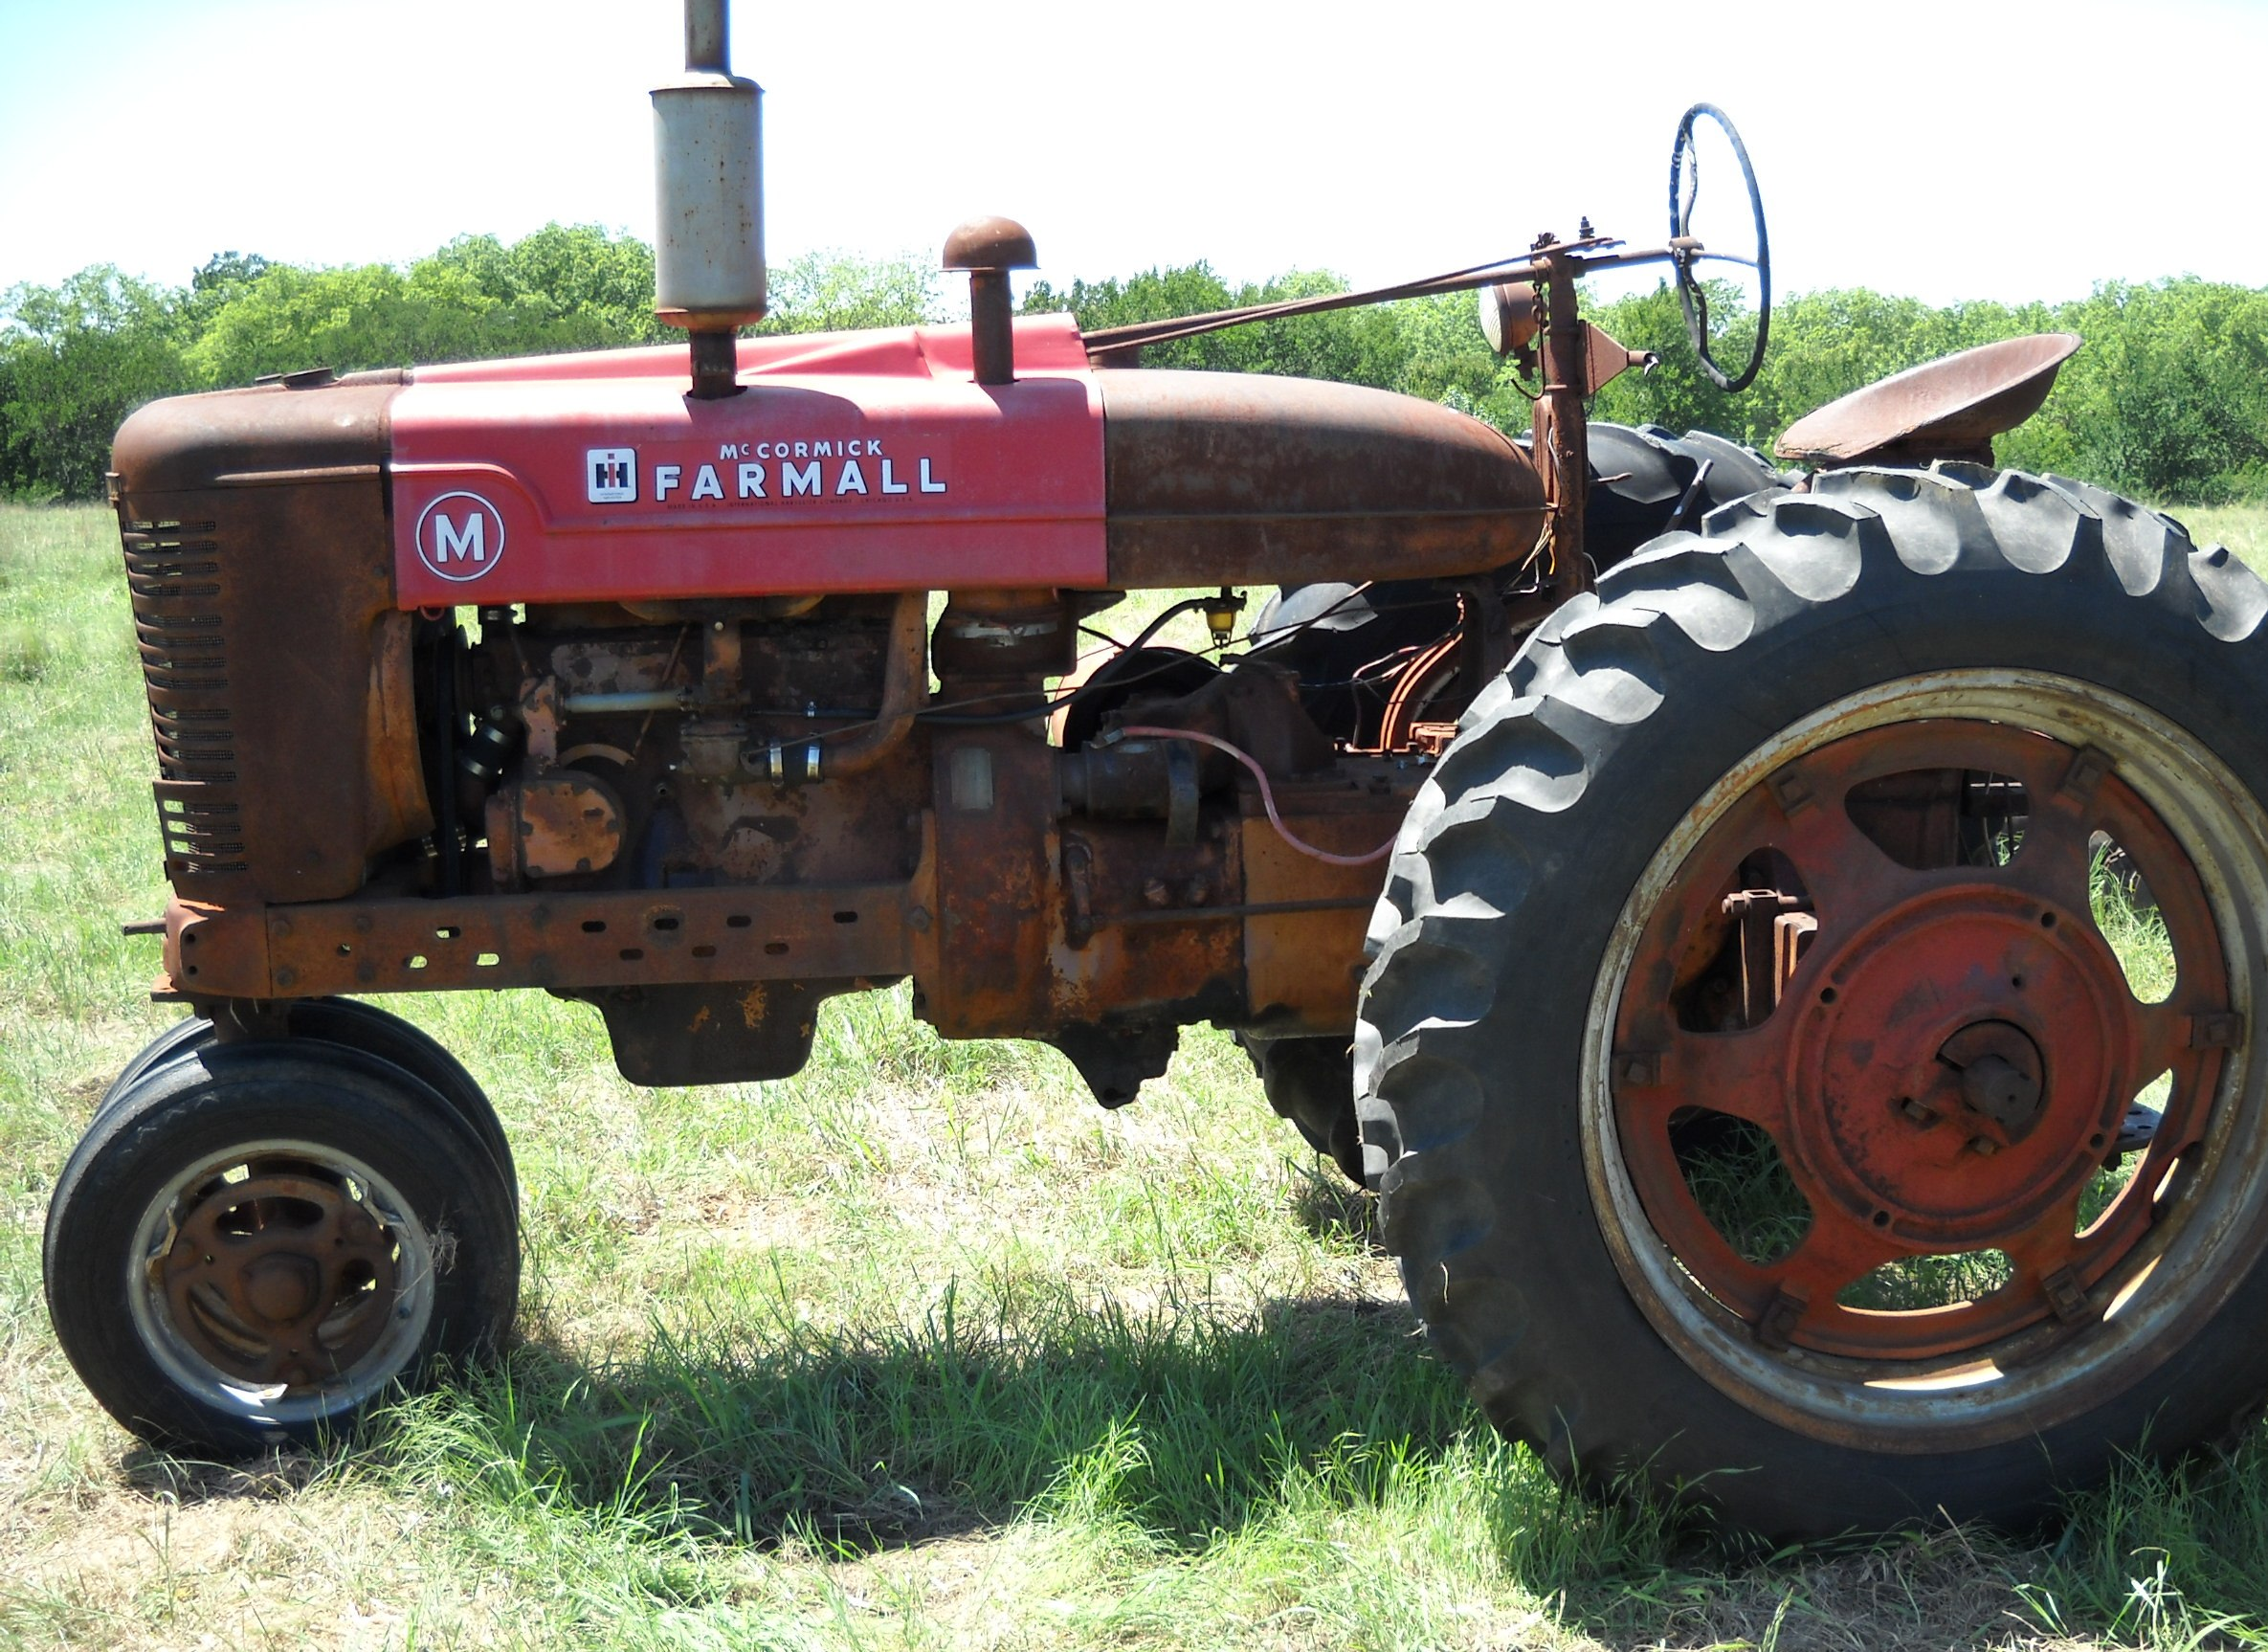 A International Farmall M 1952 Antique Tractor